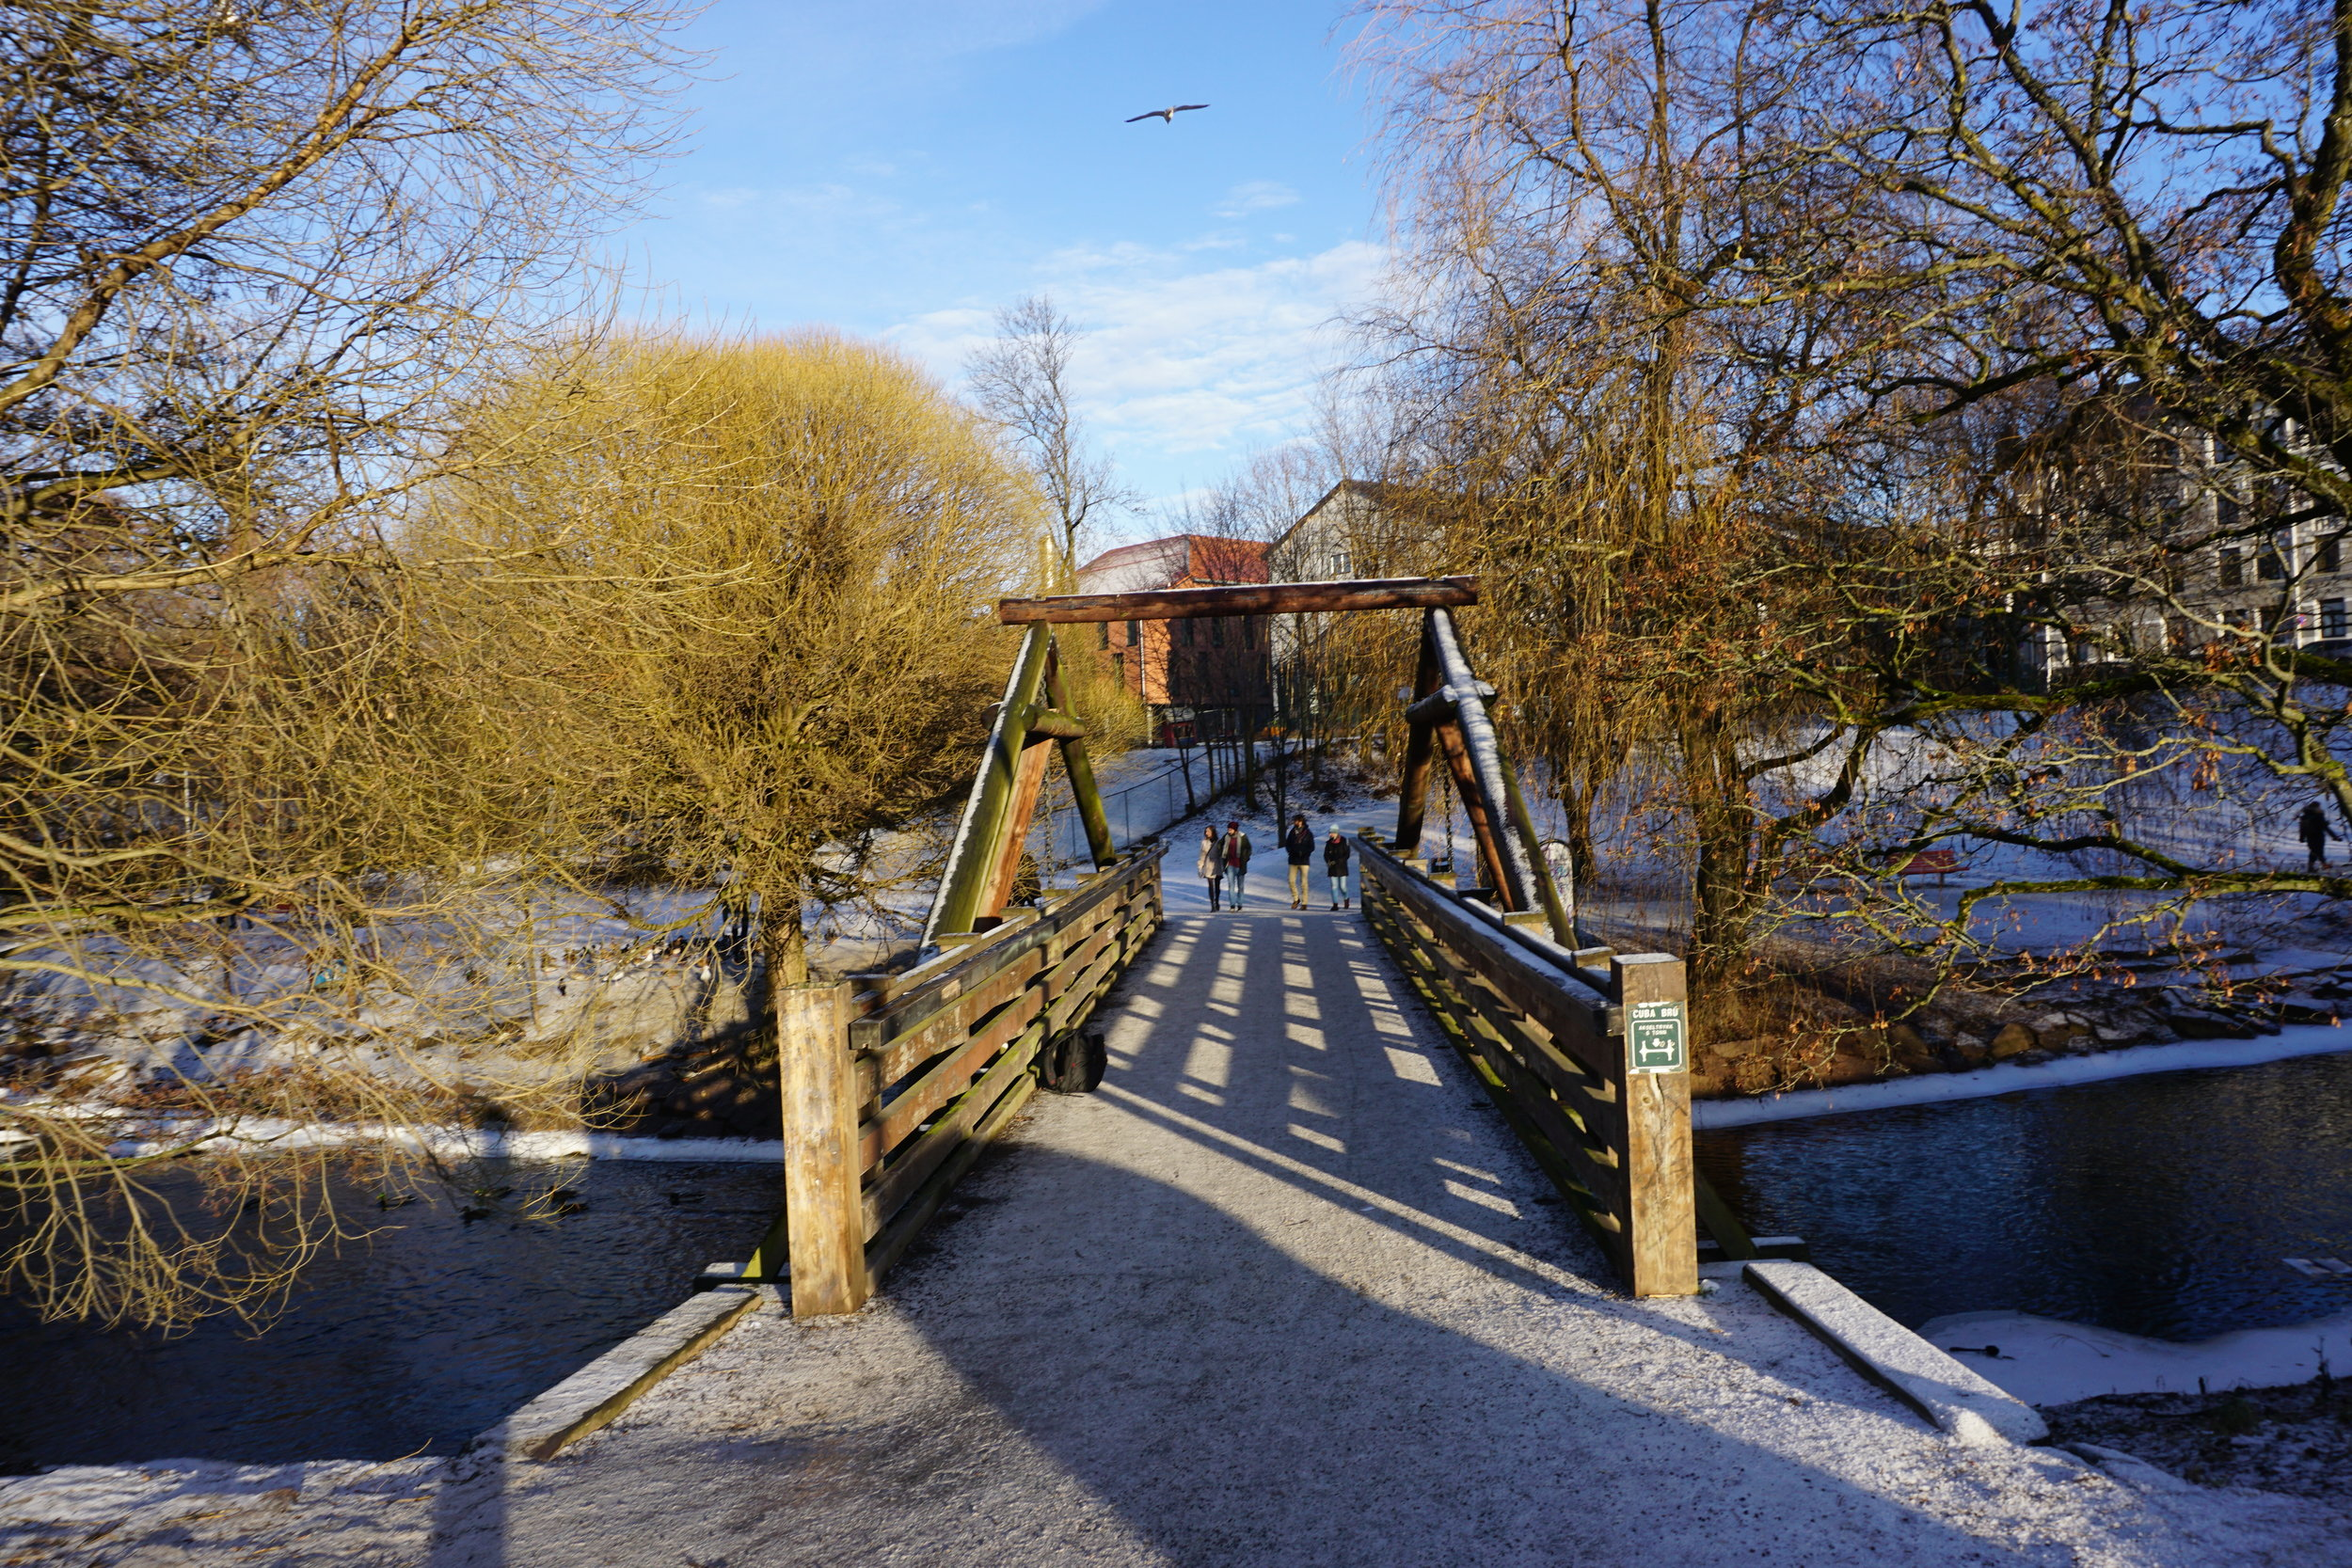 Bridge near Tim Wendelboe Cafe in Oslo. You'll think differently of this bridge by the end of this post.